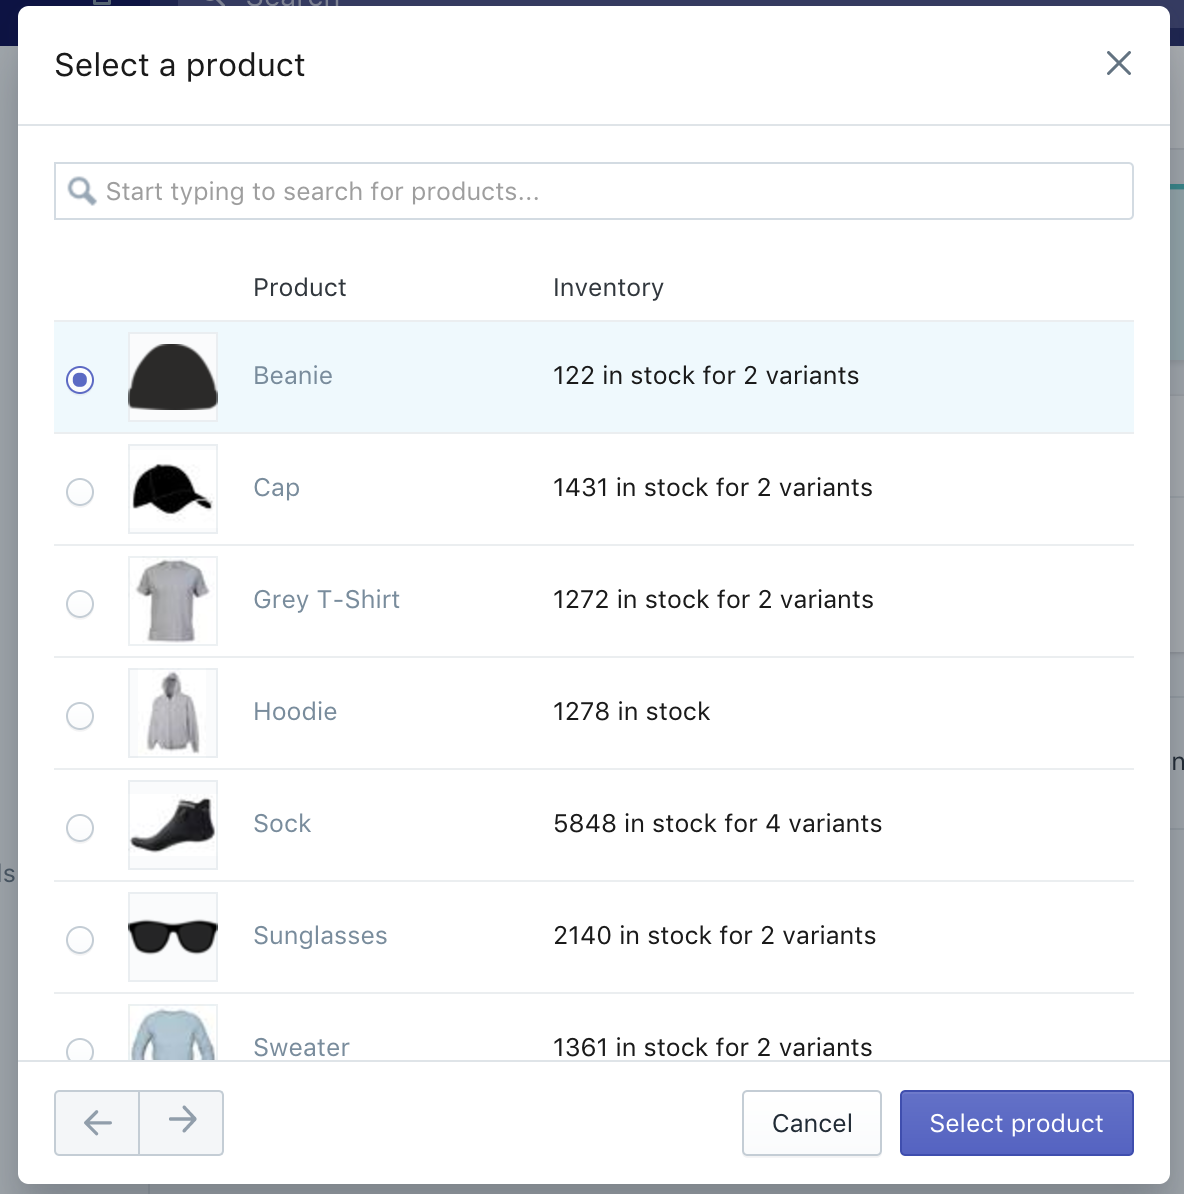 Select product button